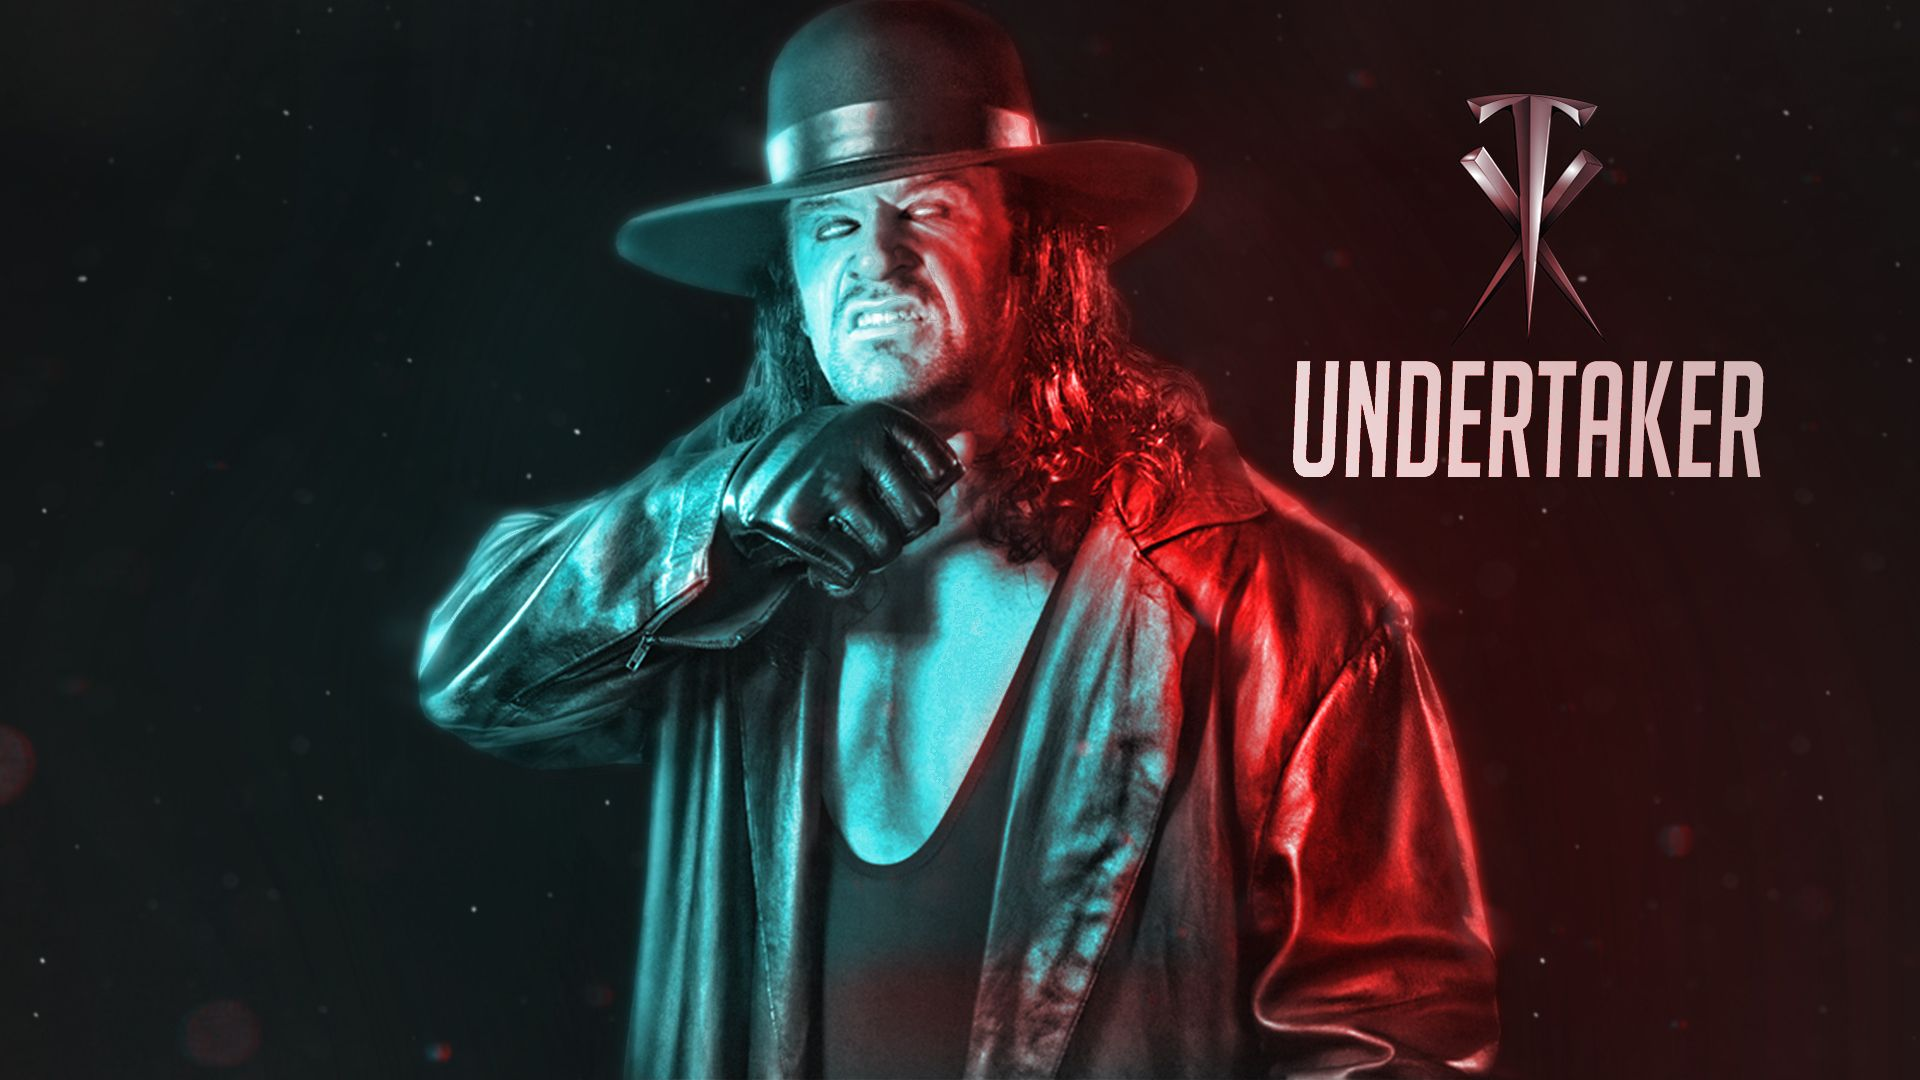 undertaker wallpaper download